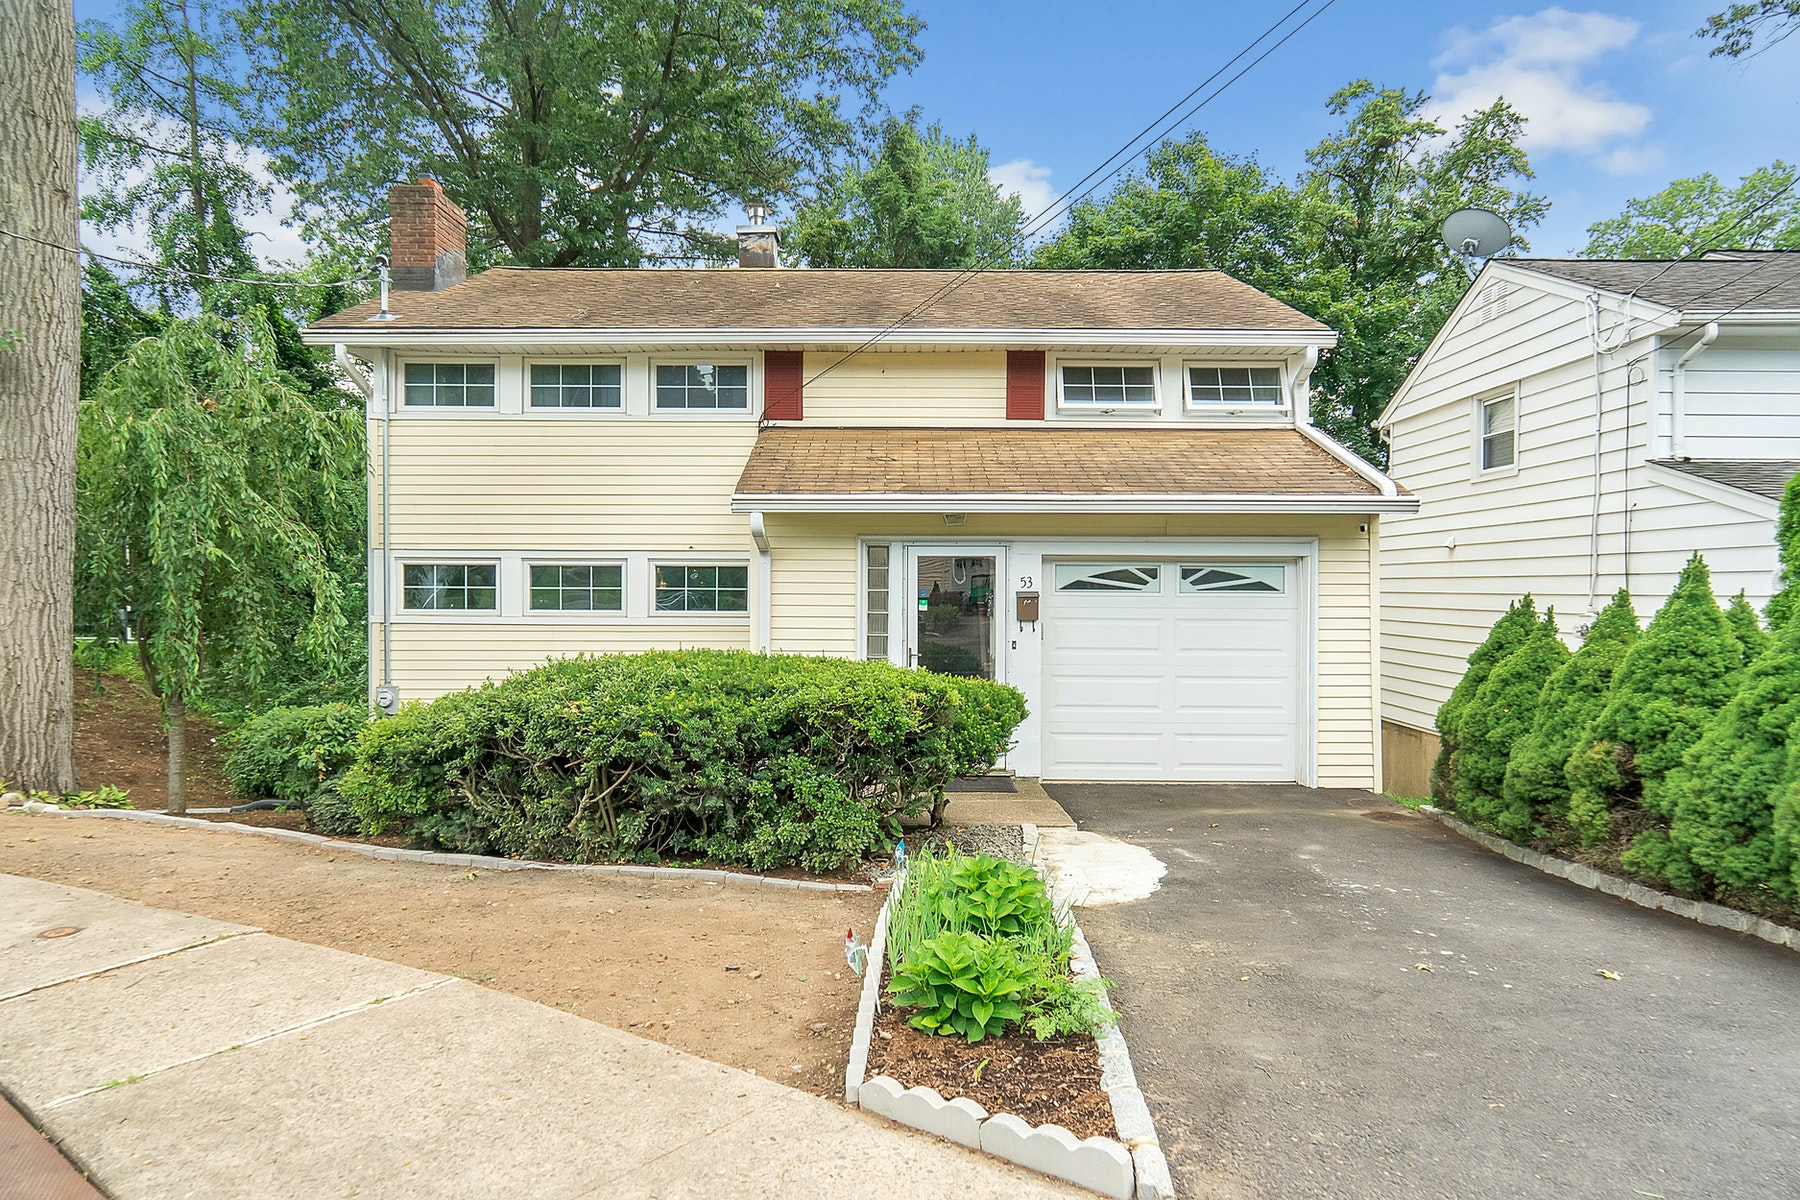 Other Residential Homes for Active at 53 Hudson Street Waldwick, New Jersey 07463 United States